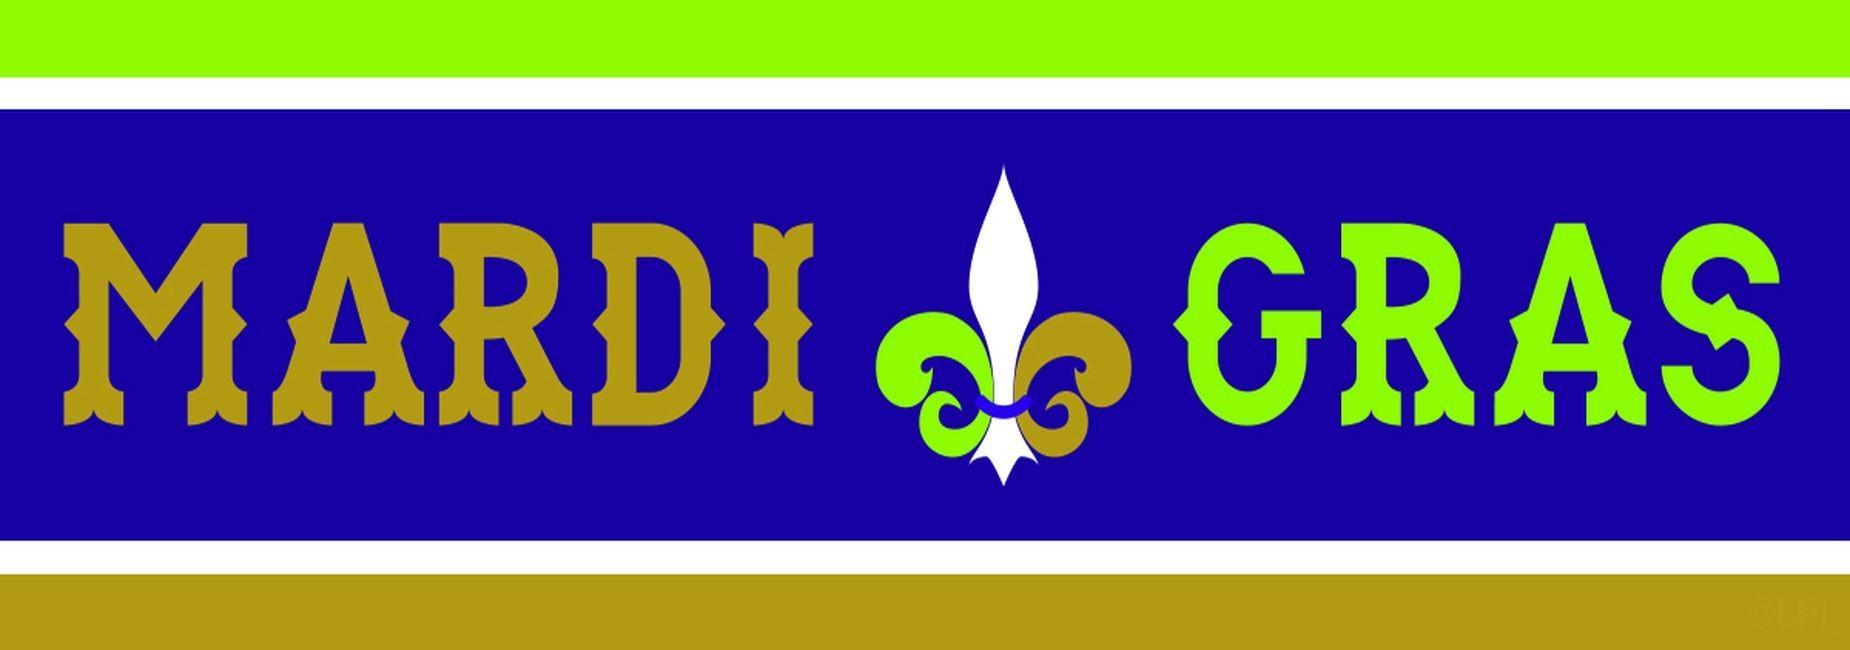 A graphic that says Mardi Gras